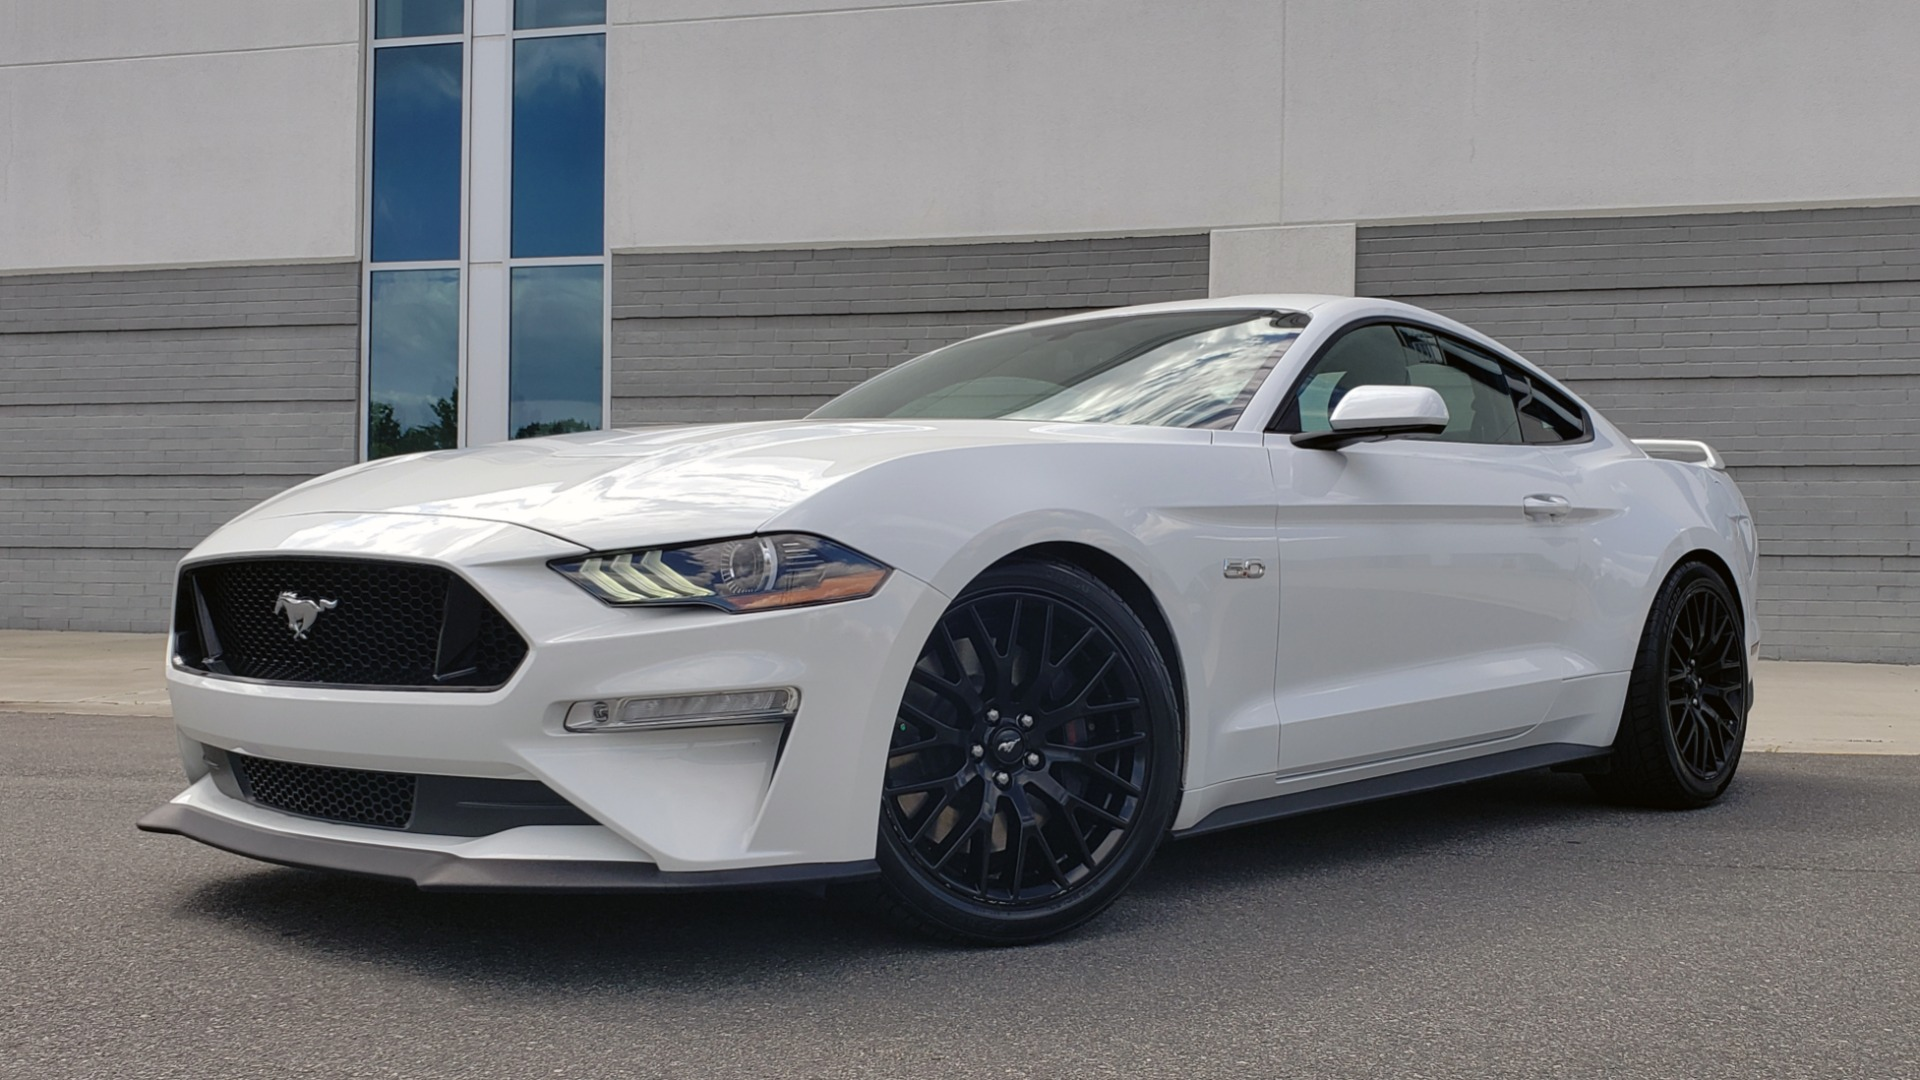 Used 2018 Ford MUSTANG GT COUPE / 5.0L V8 / AUTO / PERF PKG / REARVIEW / 19IN WHLS for sale Sold at Formula Imports in Charlotte NC 28227 3